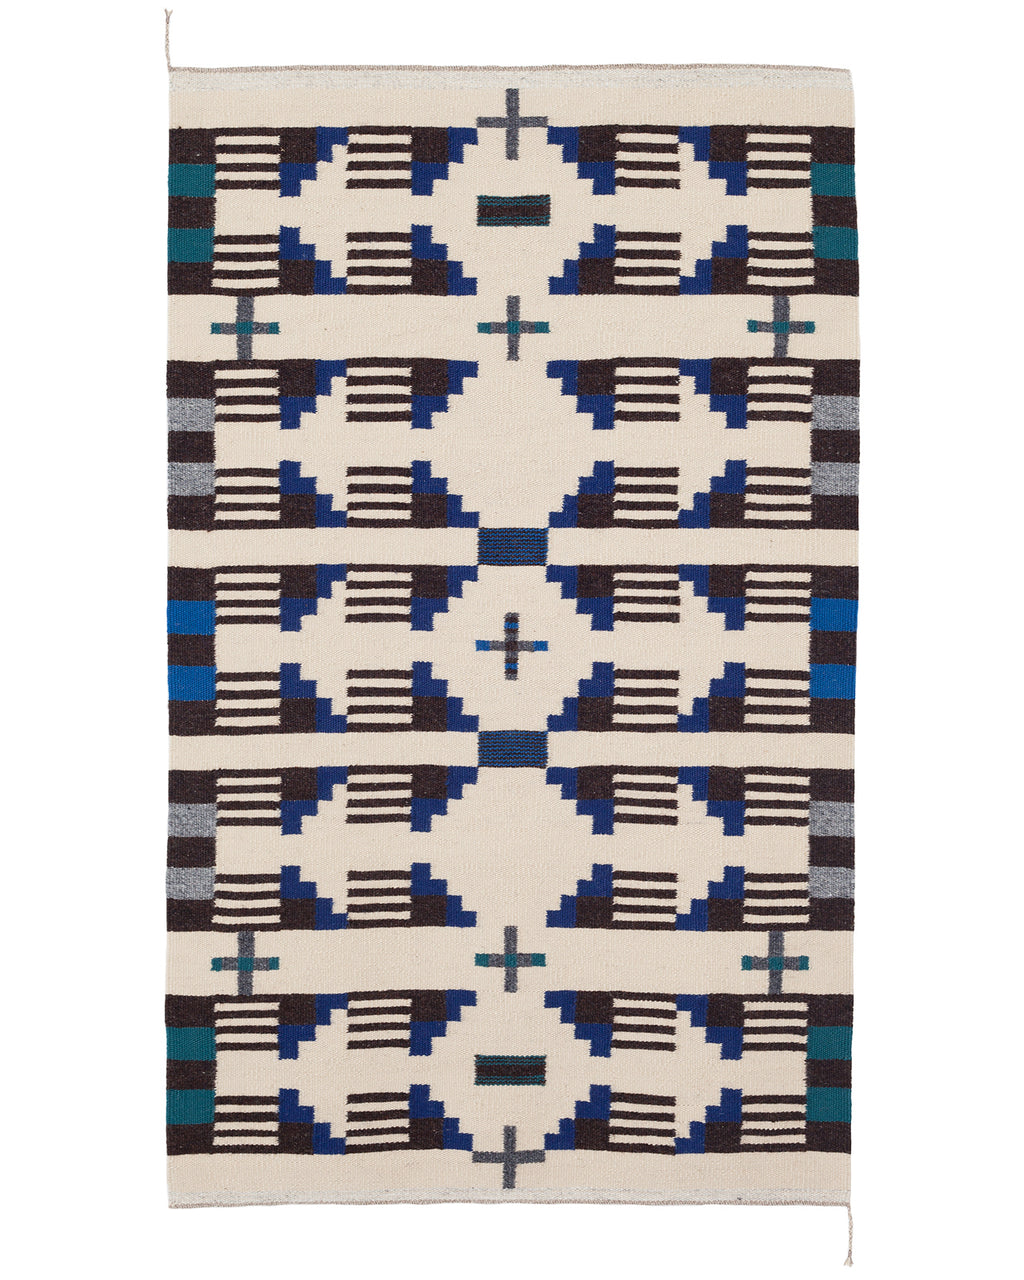 Saddle Blanket / Rug By Maria-Eugenia Thor